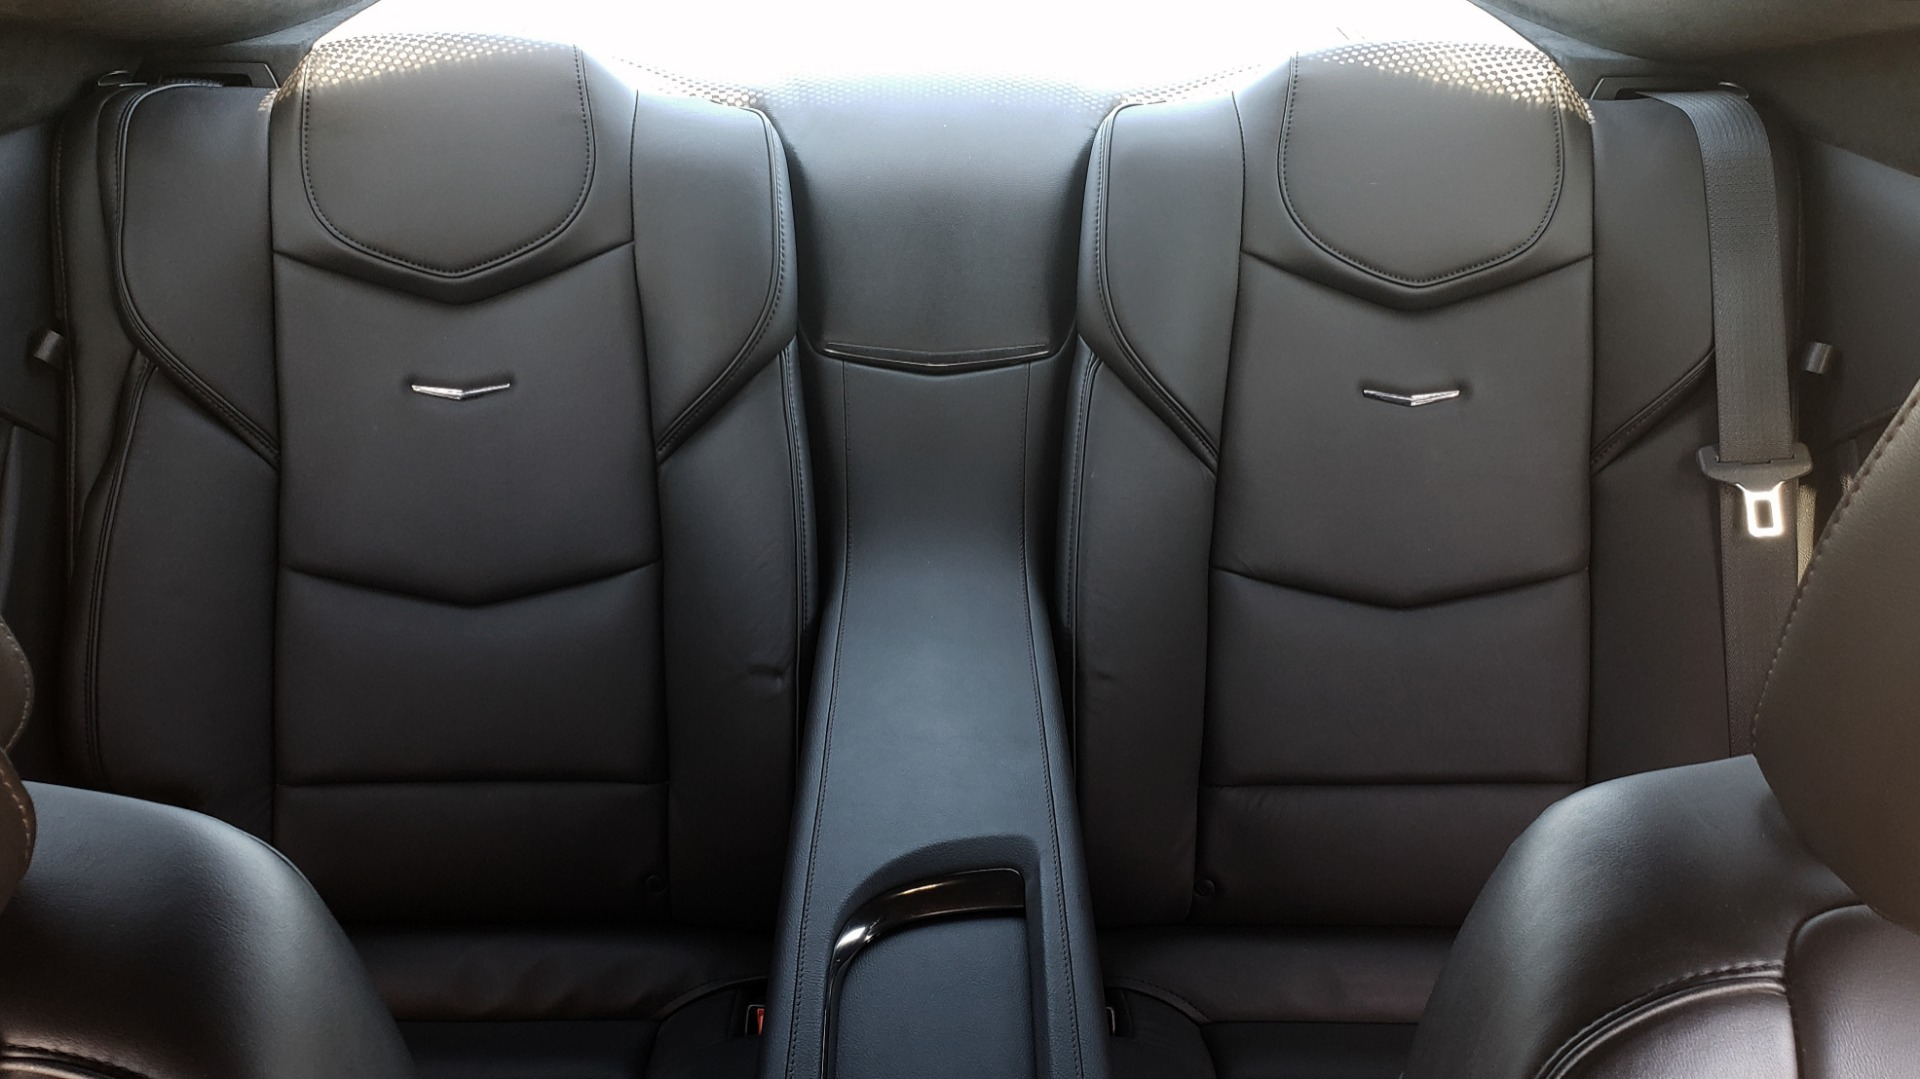 Used 2014 Cadillac ELR 2DR COUPE / HYBRID / NAV / BOSE / HEATED SEATS / REARVIEW for sale $19,995 at Formula Imports in Charlotte NC 28227 63